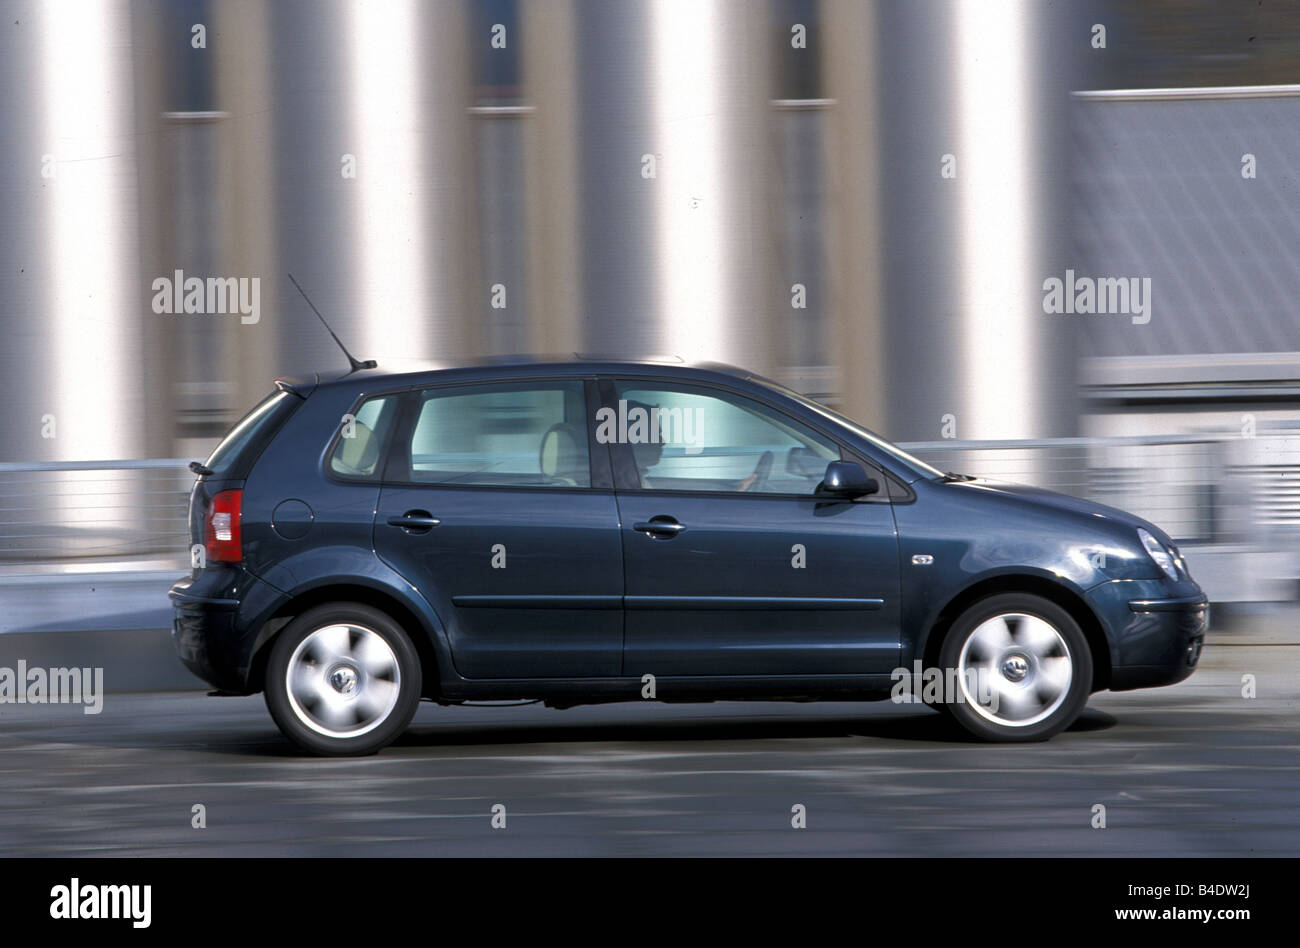 Car Vw Volkswagen Polo Tdi Limousine Small Approx